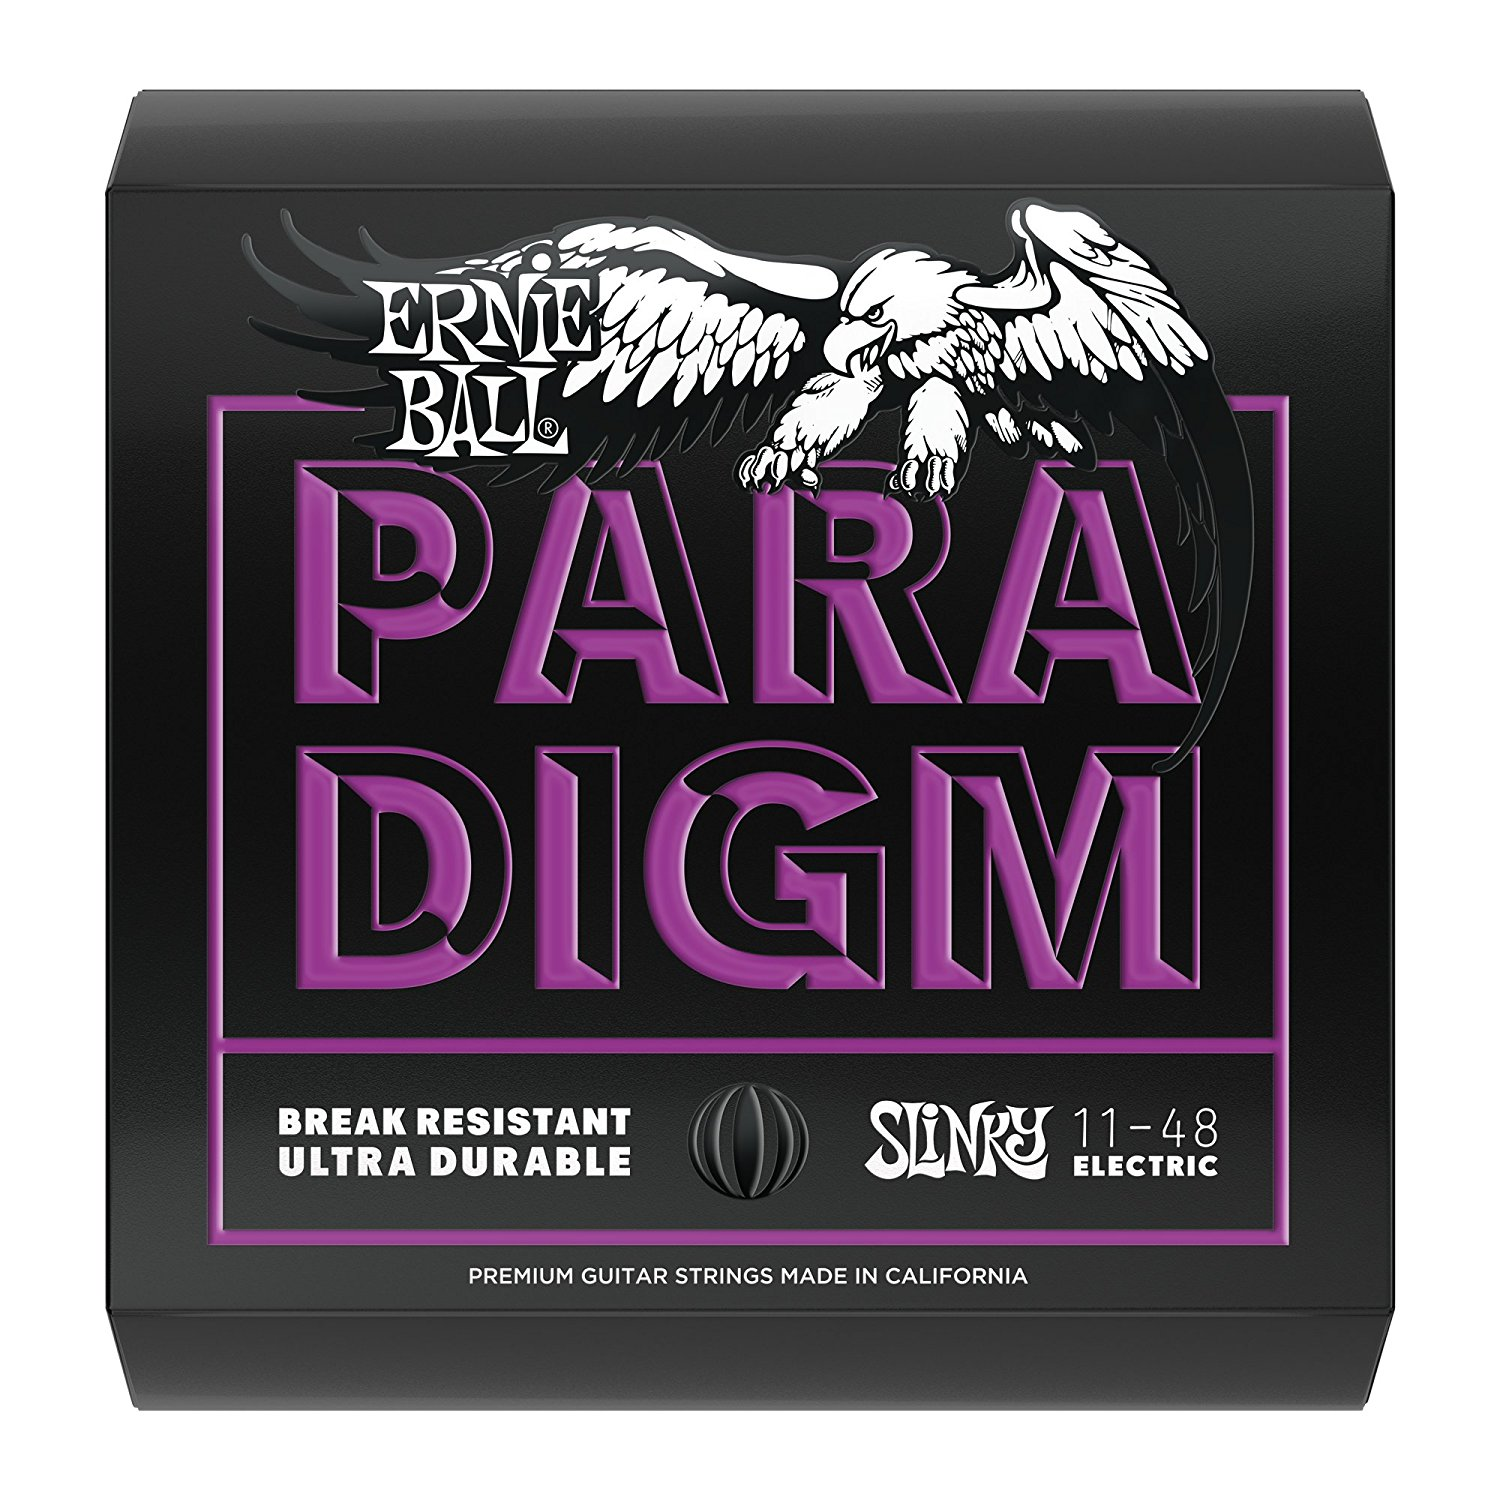 2020 Paradigm Electric Guitar String, Power Slinky, Ernie Ball's New state-of-the-art wire... by